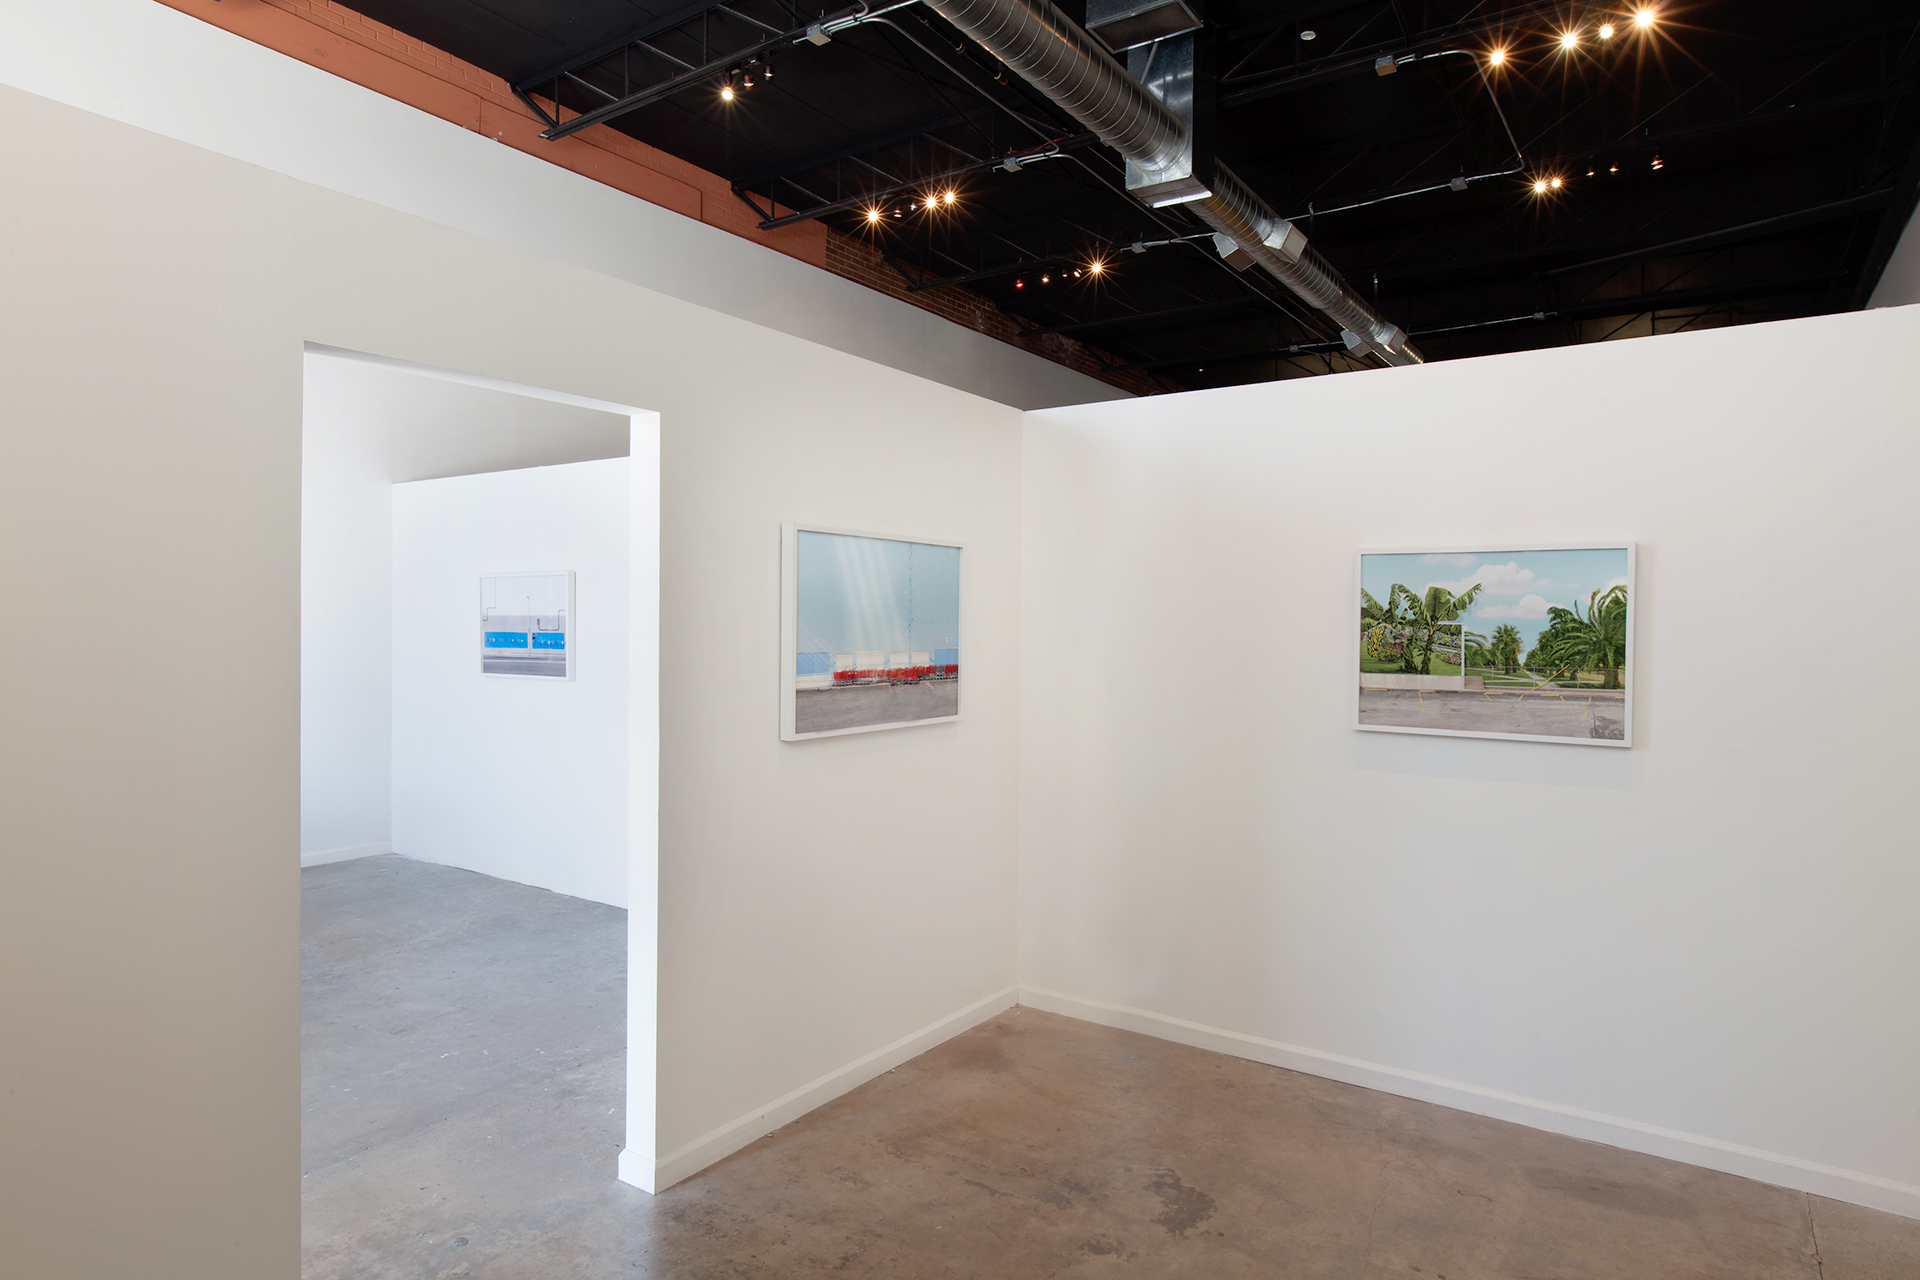 Installation view at the Liliana Bloch Gallery, Dallas, TX, 2014. Image courtesy of Kevin Todora.